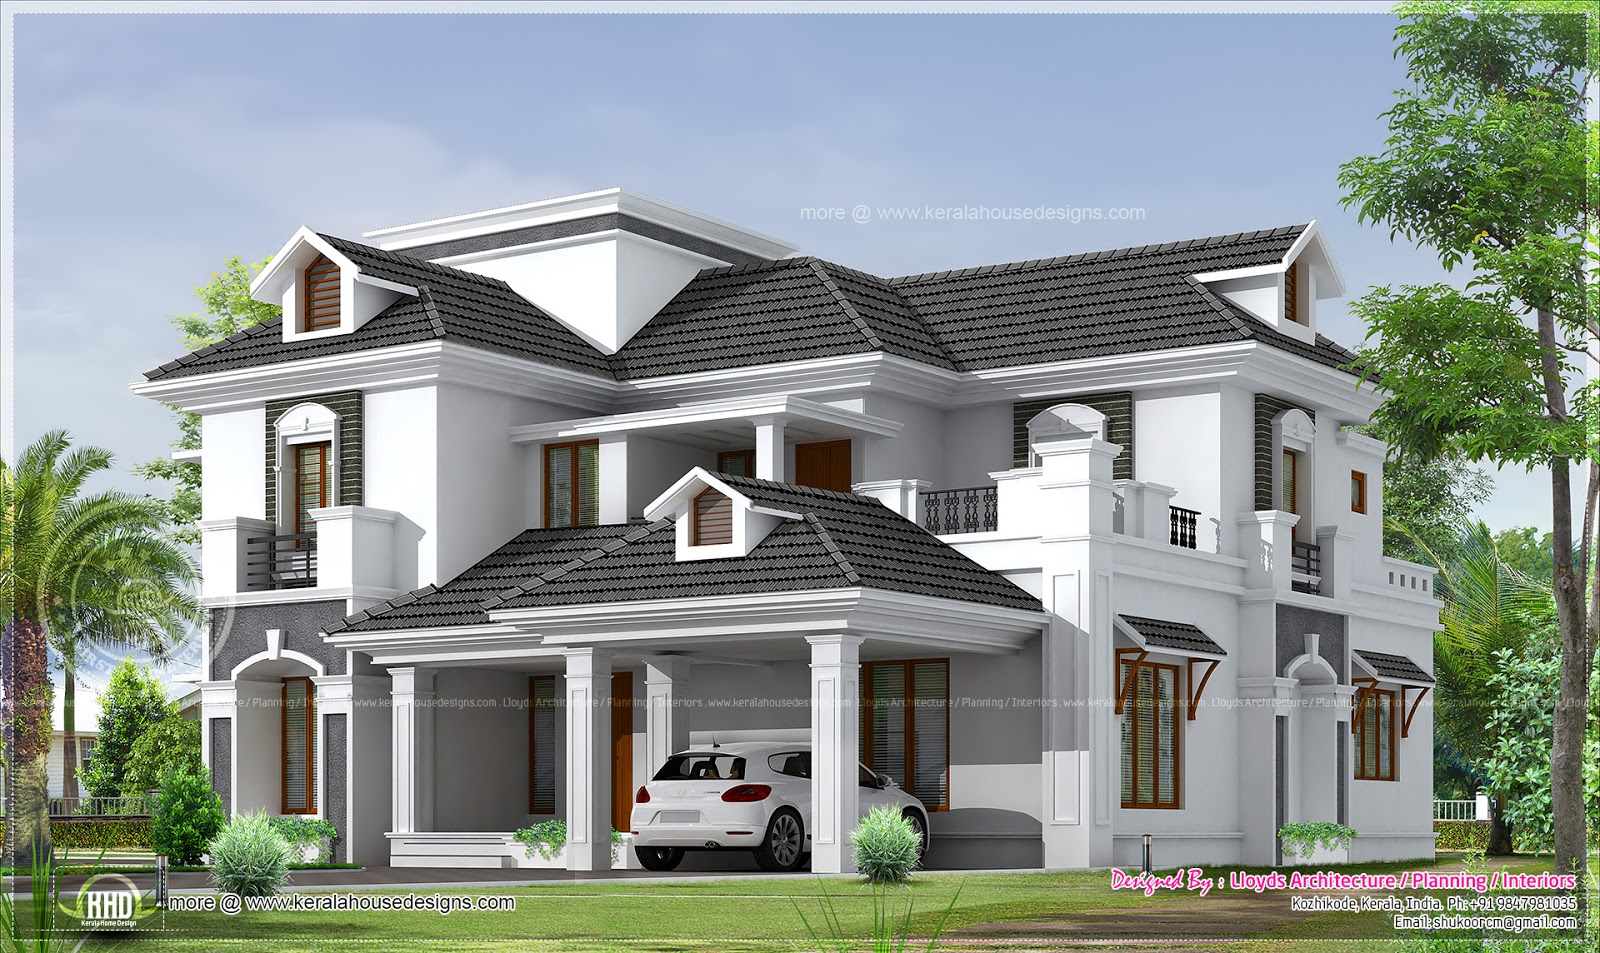 Magnificent 4-Bedroom Bungalow House Plans 1600 x 953 · 495 kB · jpeg